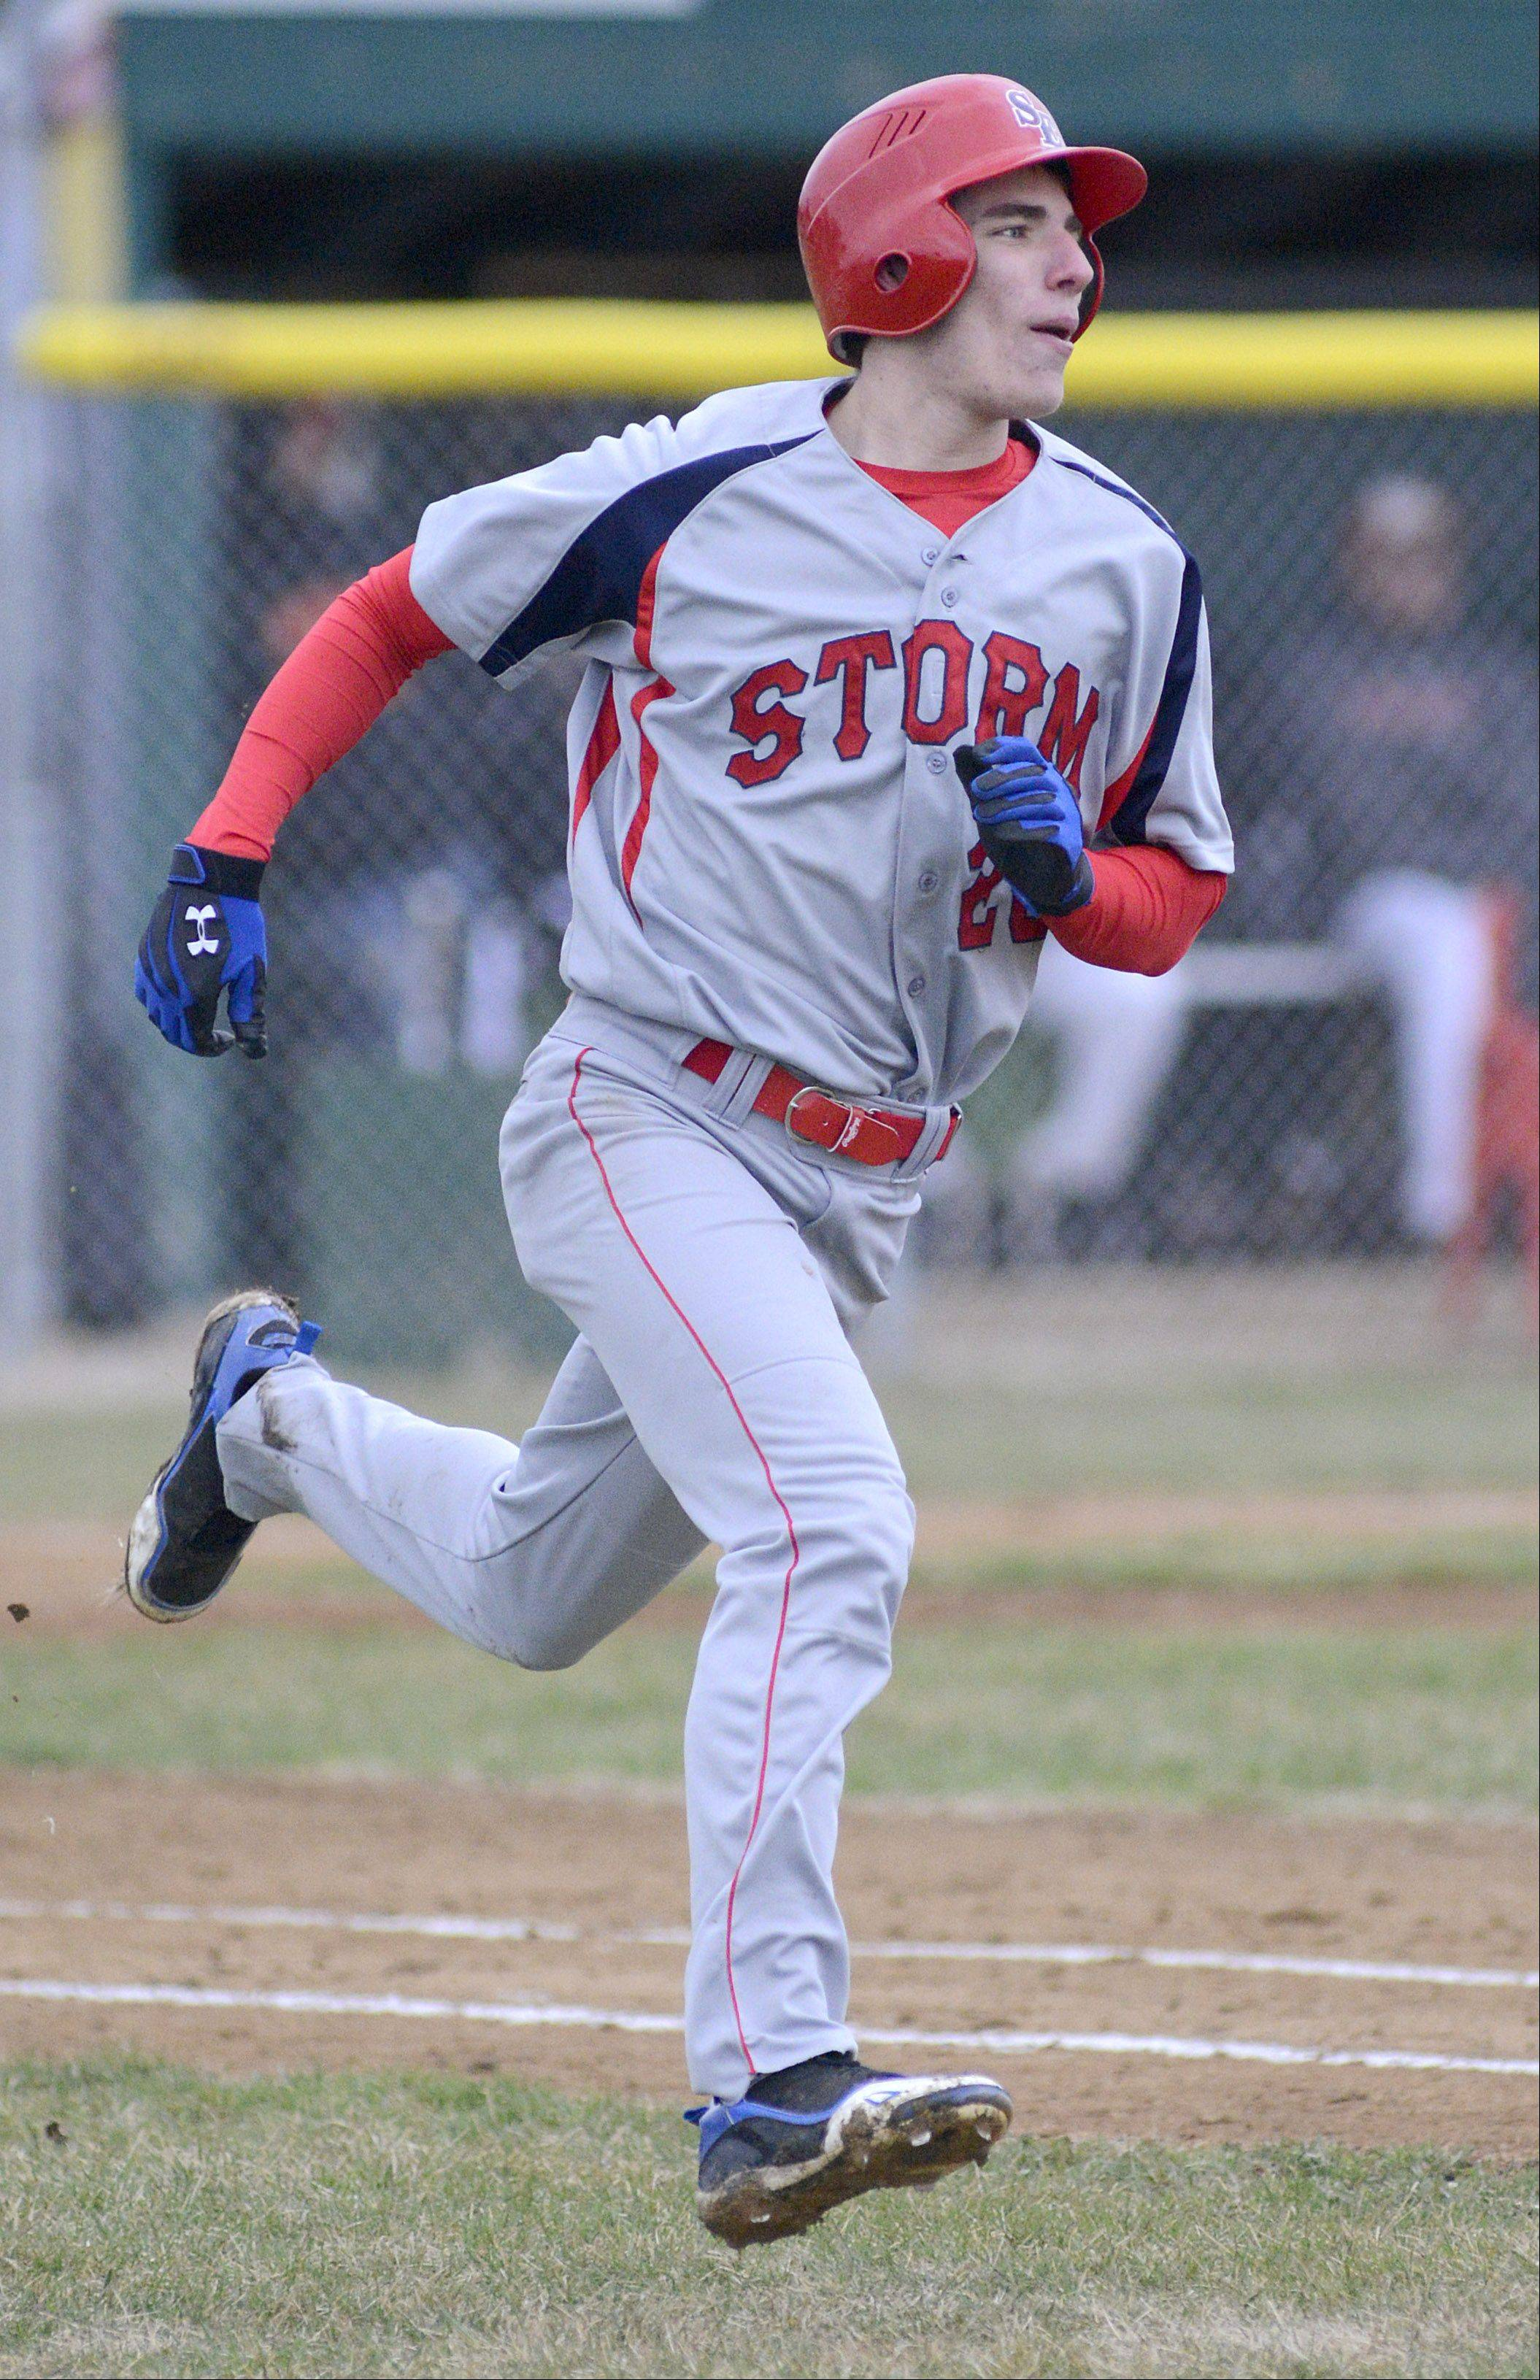 South Elgin's Ryan Nutof heads to first base after a hit that took him all the way around to third base in the fourth inning on Friday, April 12.